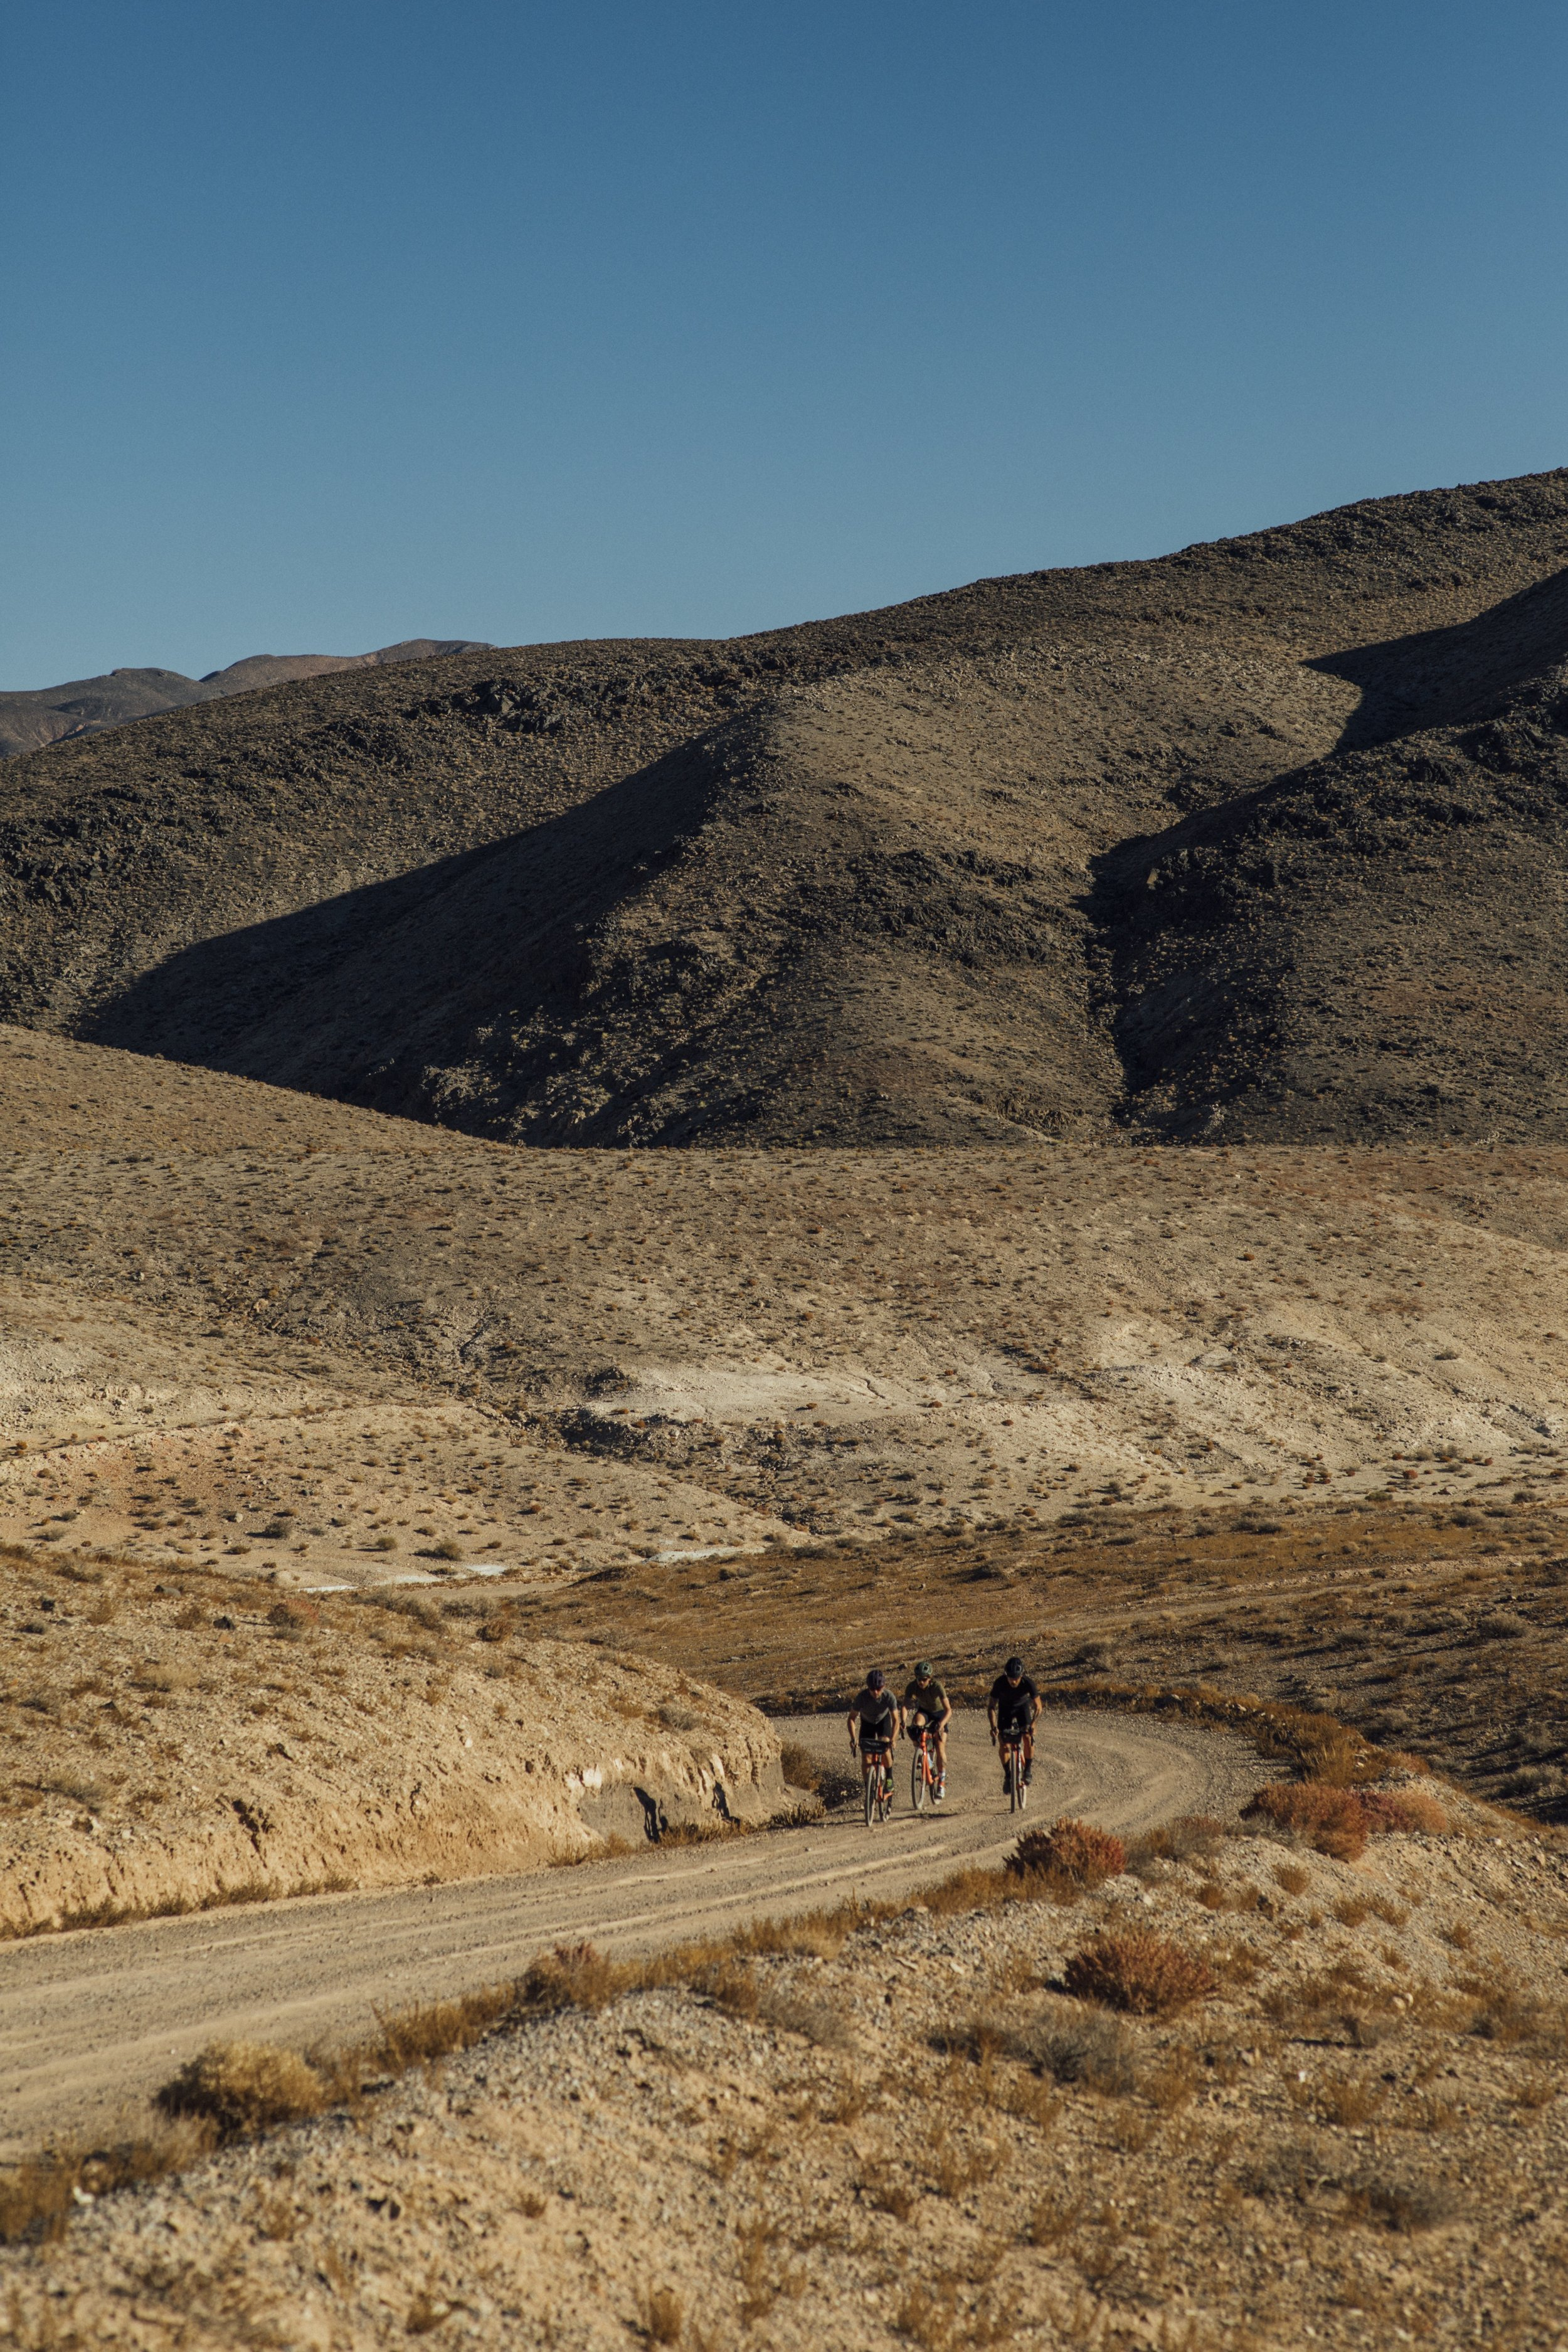 They ride through a valley of death, out and over a long, dusty road. -